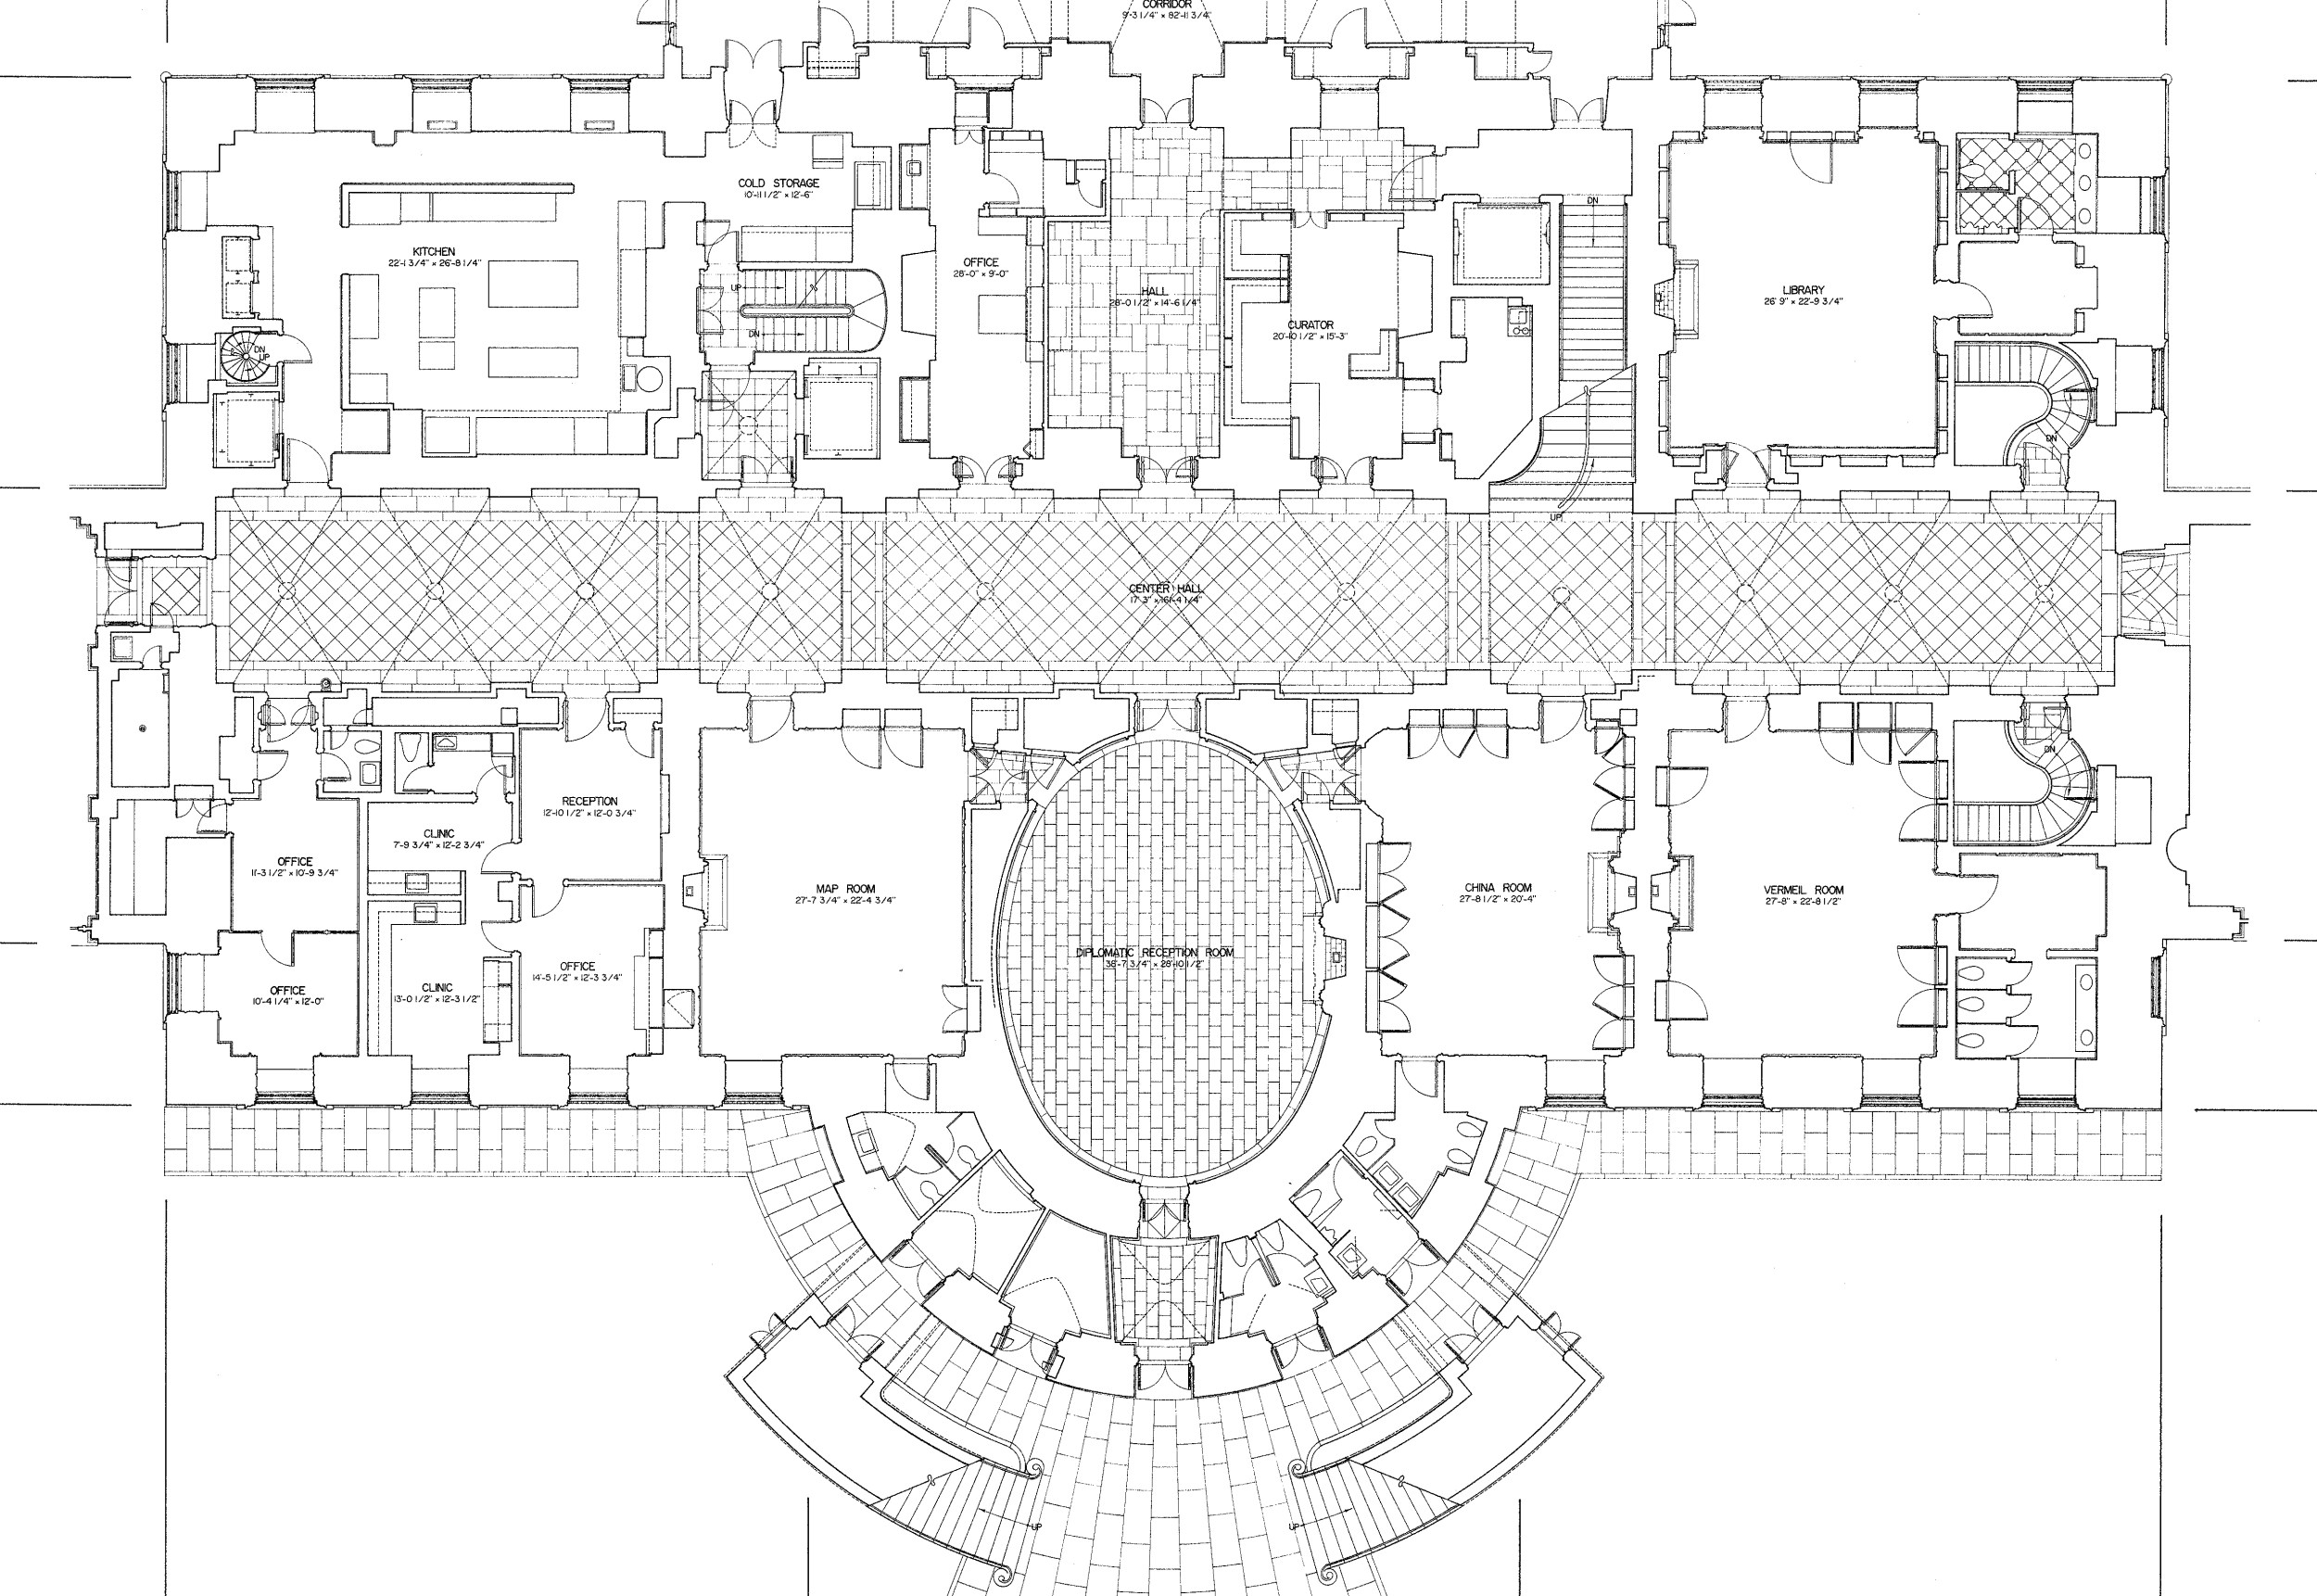 Http Www Worldfloorplans Com Floorplans Whitehouse Ground Plan Shtml